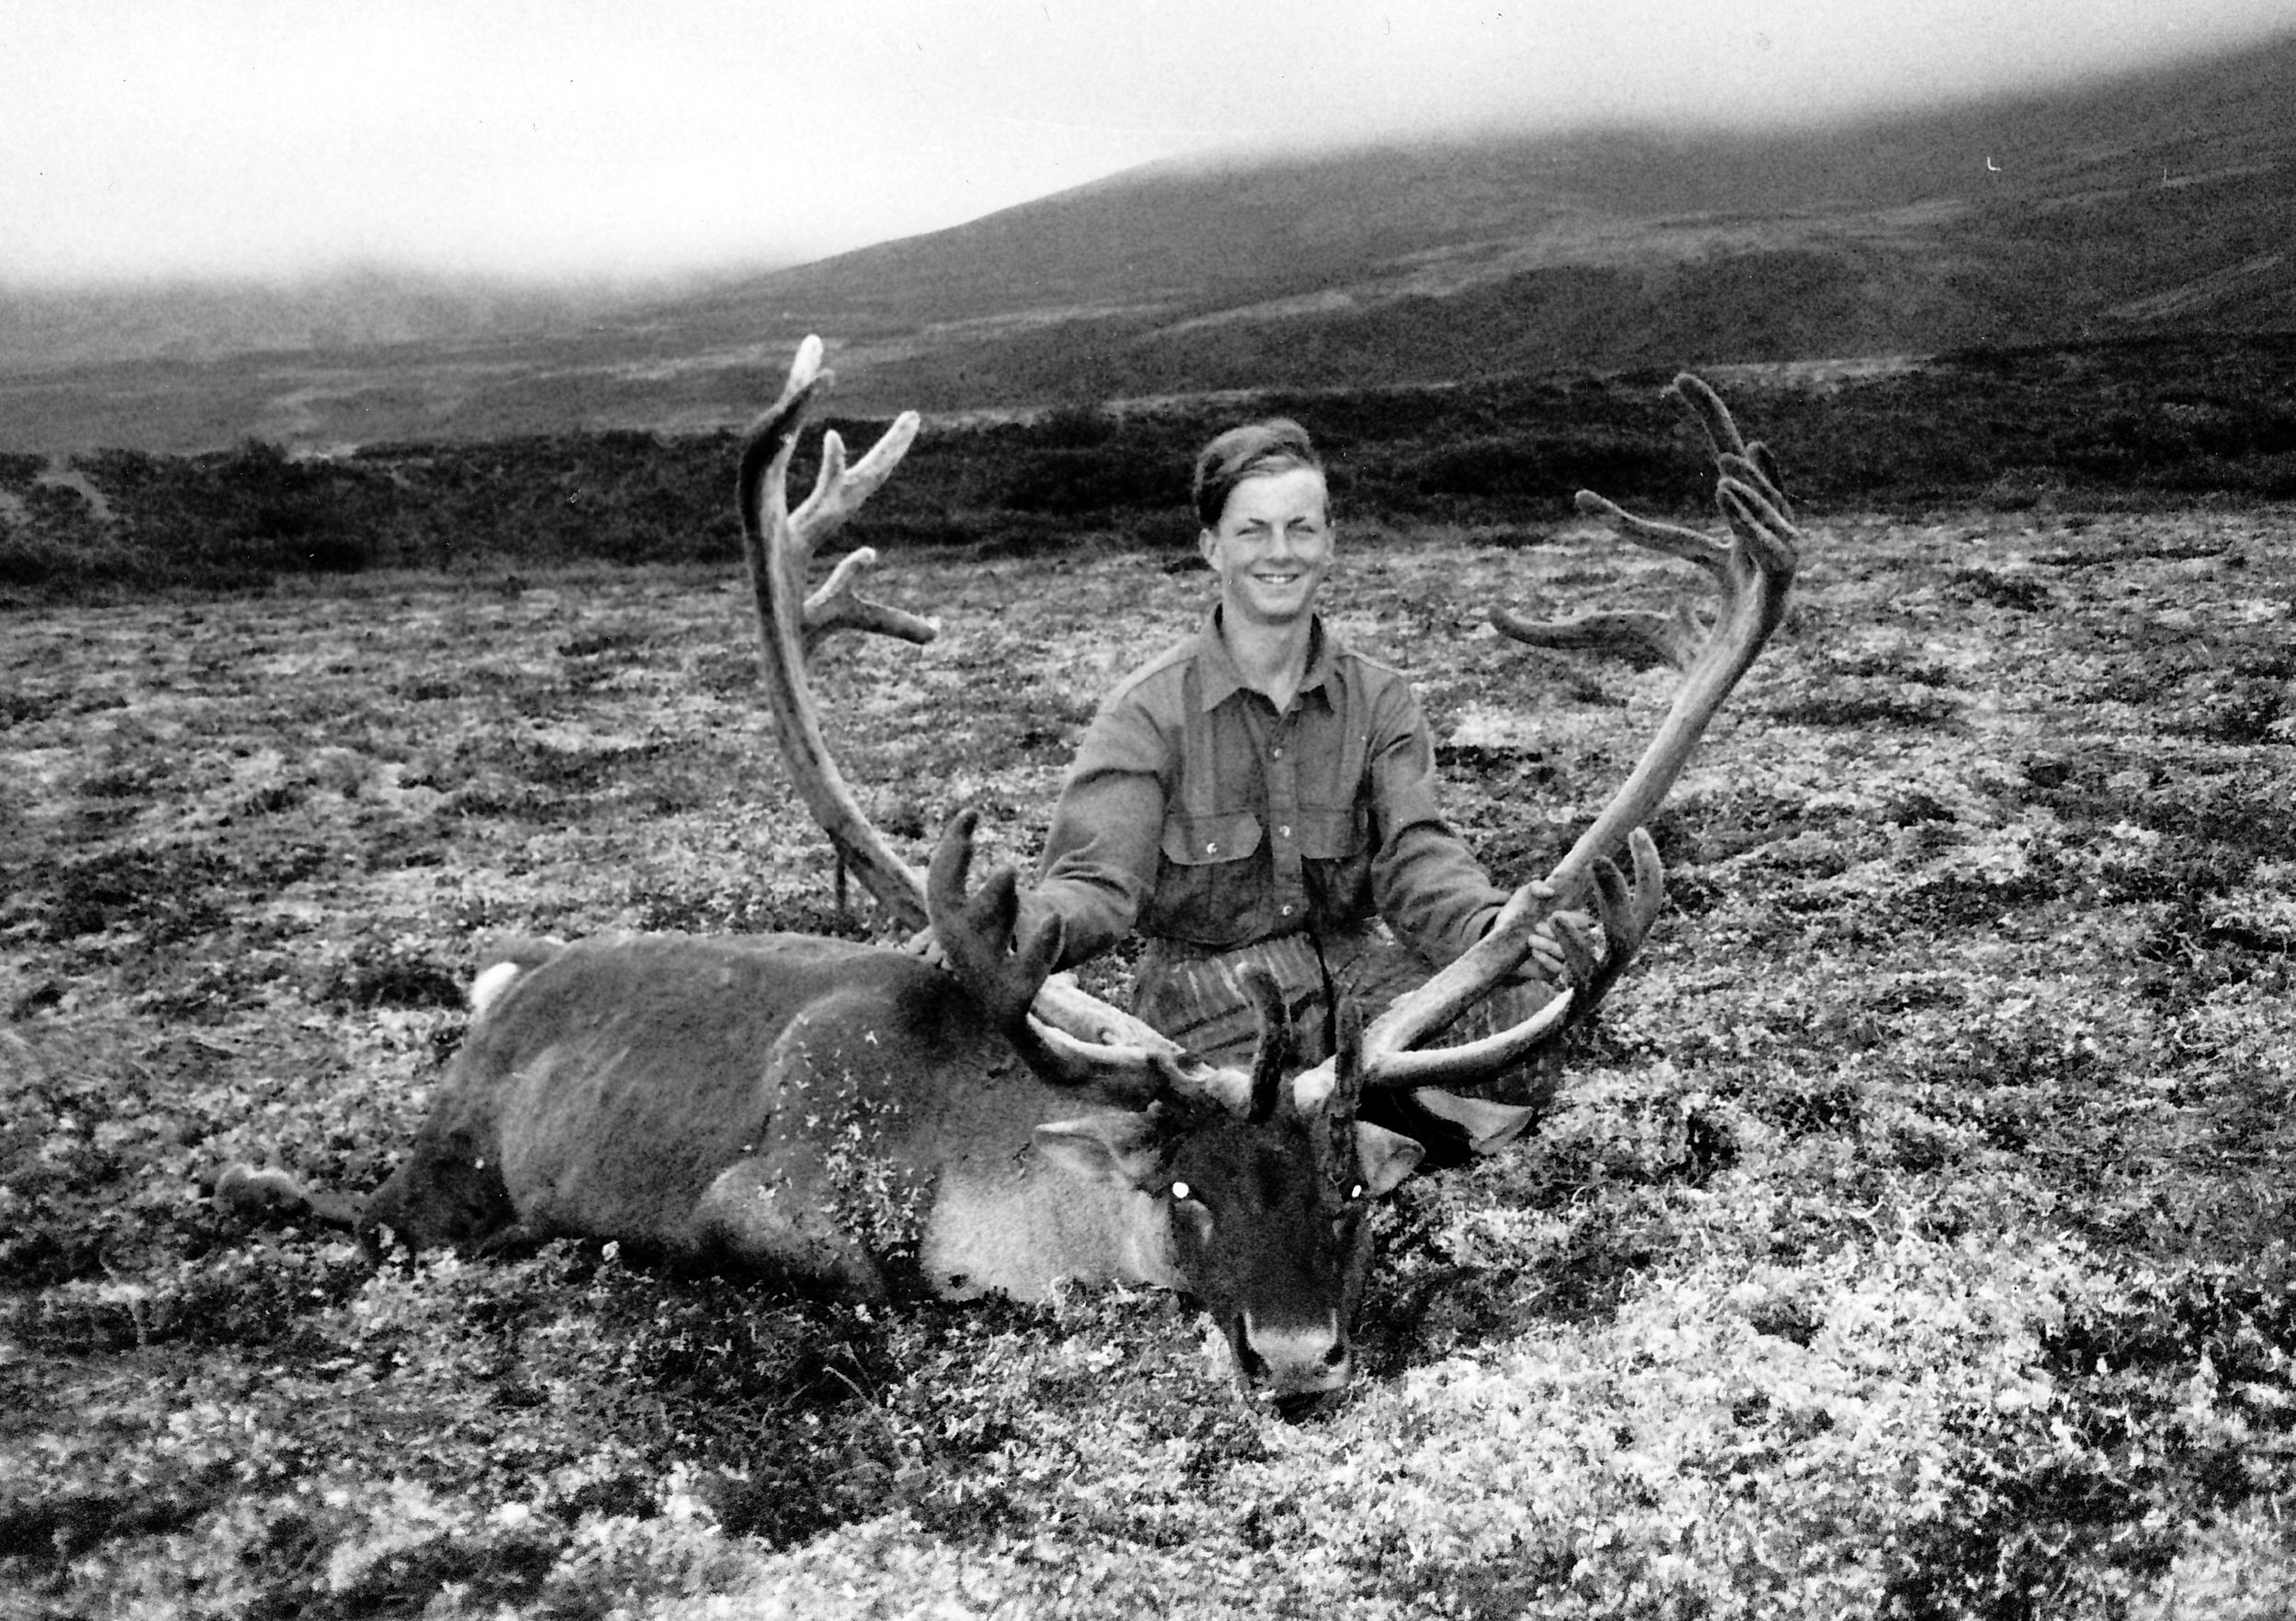 Brian Wittman of MT, age 15, was our youngest hunter to take a B&C caribou, a wide 401 6/8 B&C. He was on a 2x1 hunt with his father who shot a 395 B&C. I helped Steve Lanphier guide this father/son.